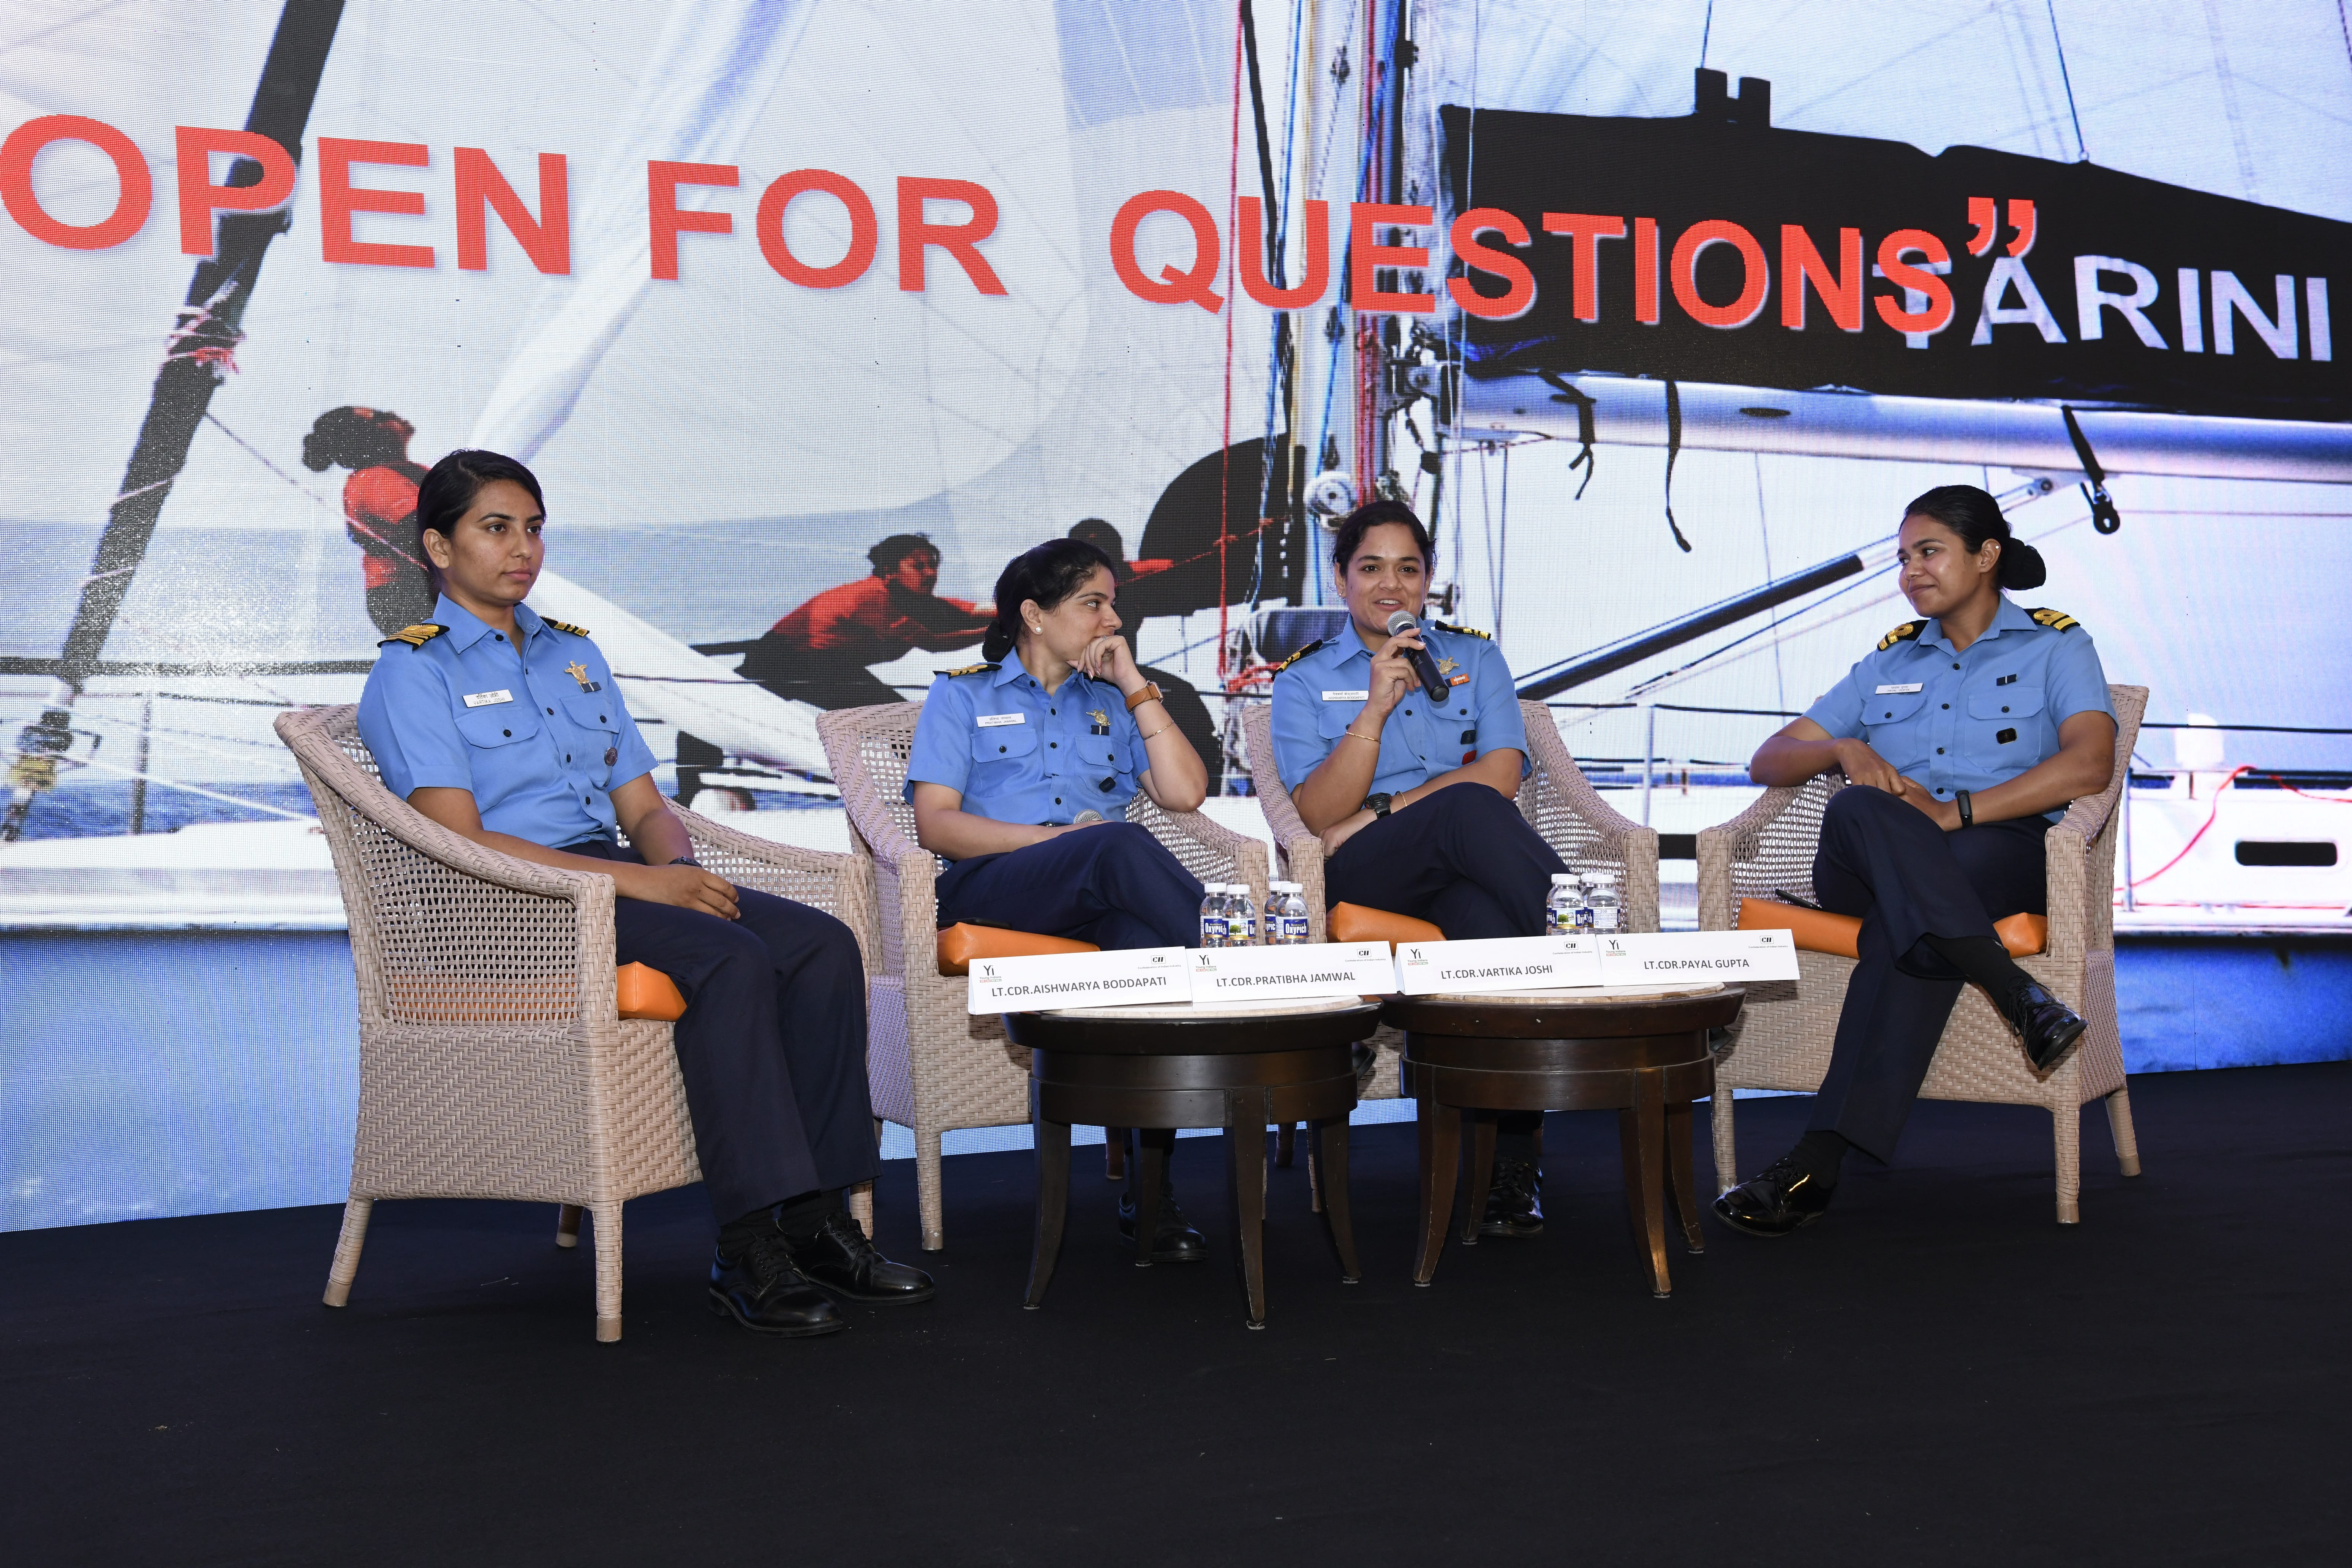 Team Tarini - An All women Navy officers' team that circumnavigated the Globe on INSV at Take Pride 2019